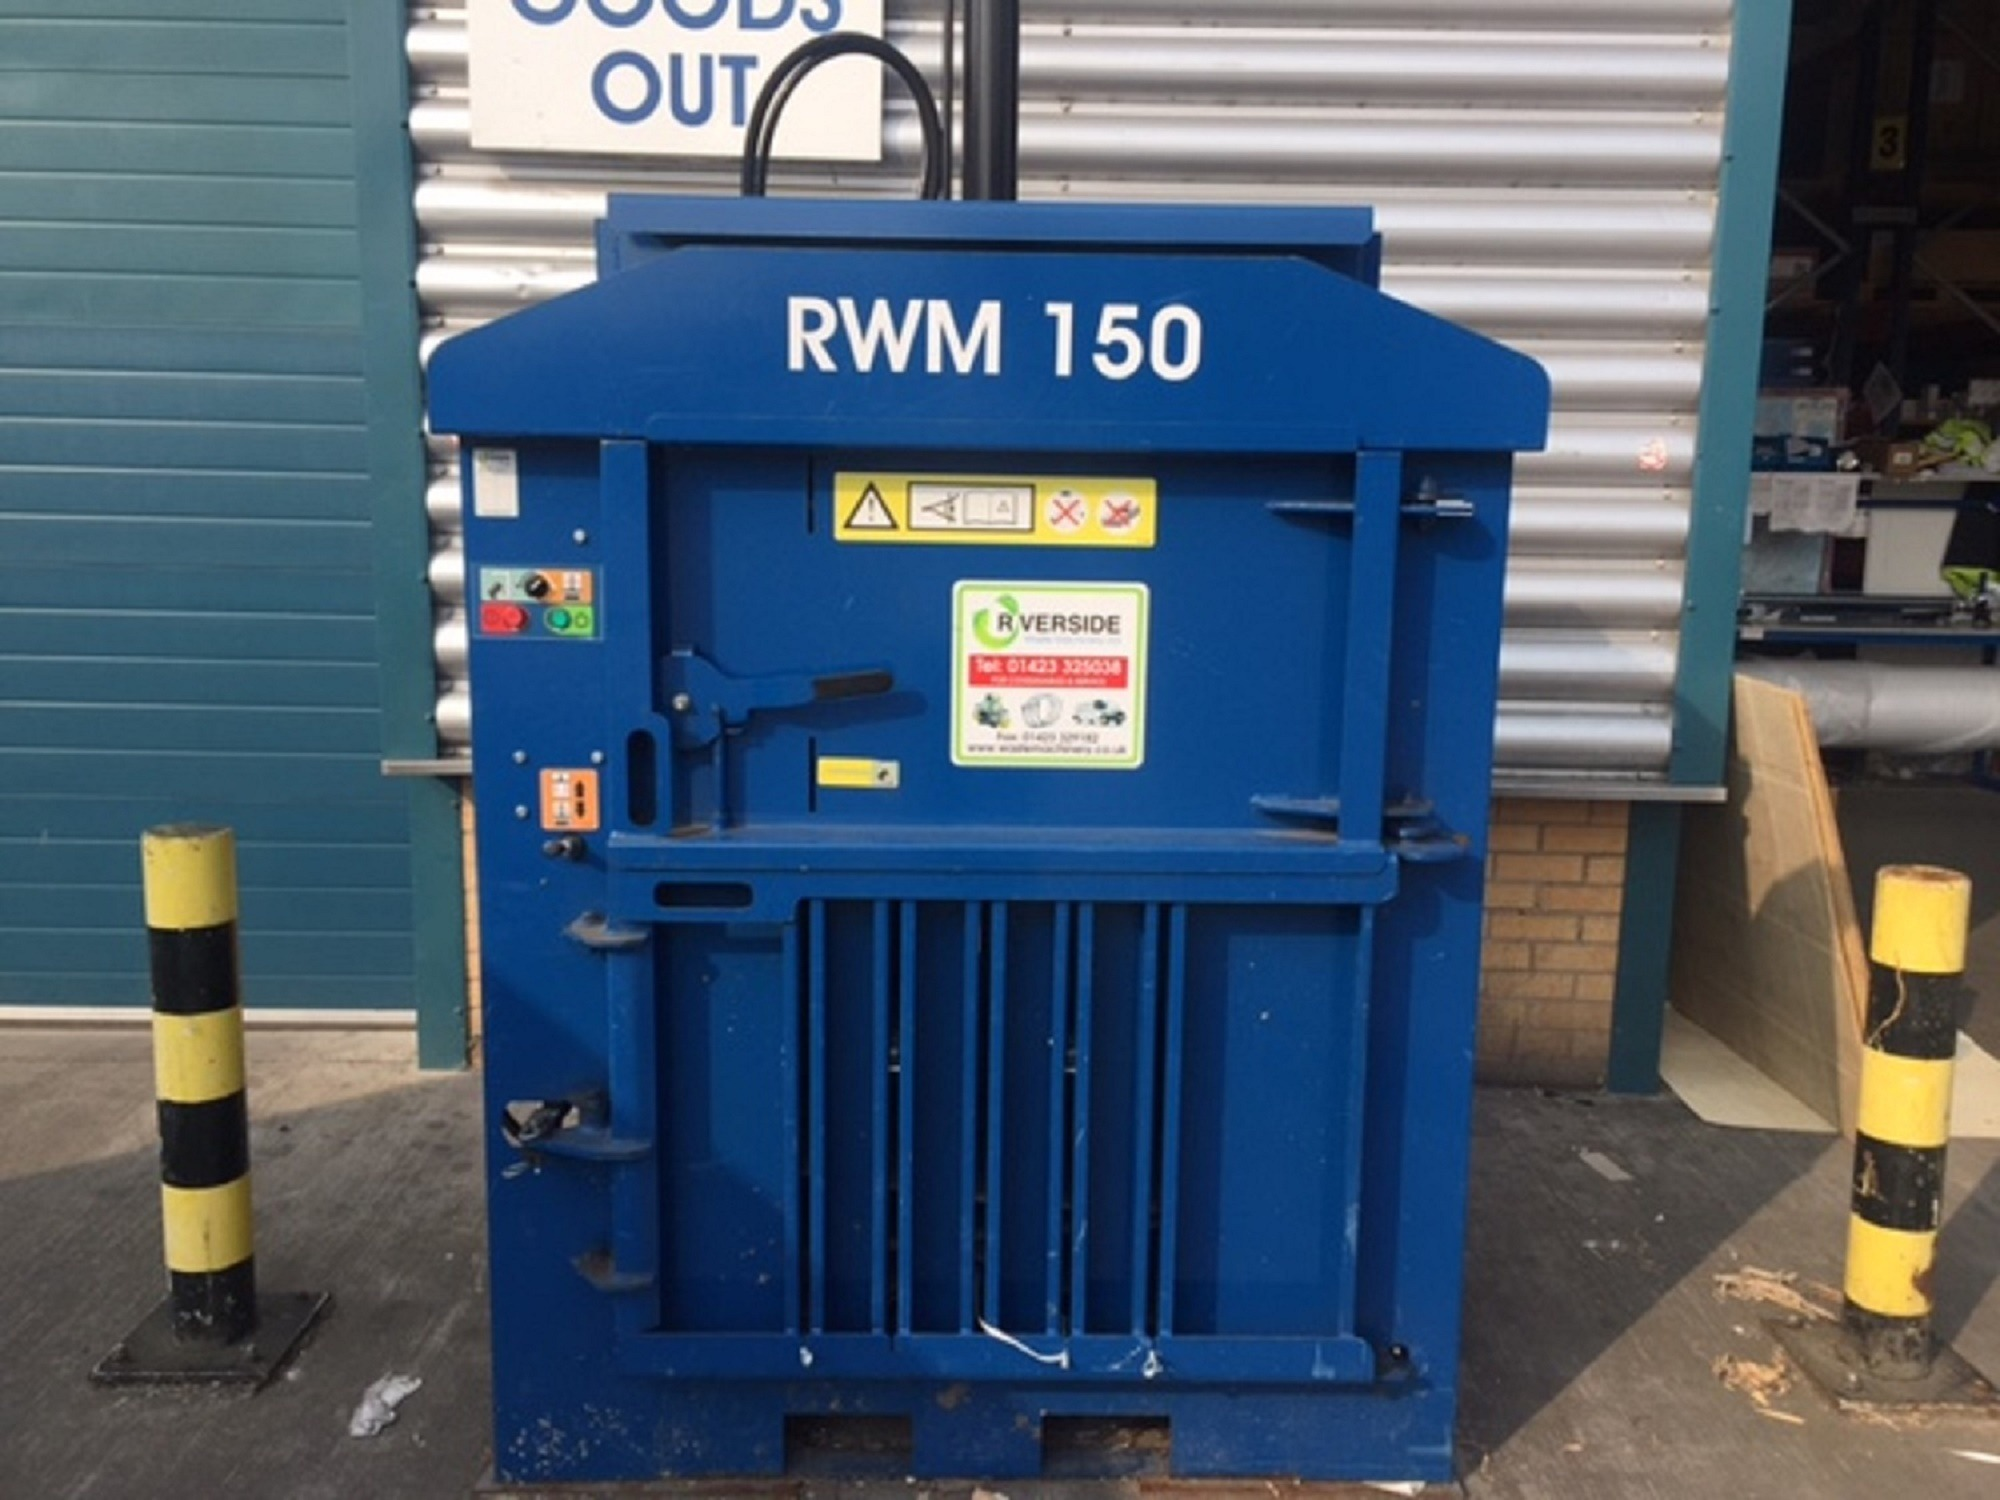 Edmundson Electrical invests in waste baler in quest to 'go green'